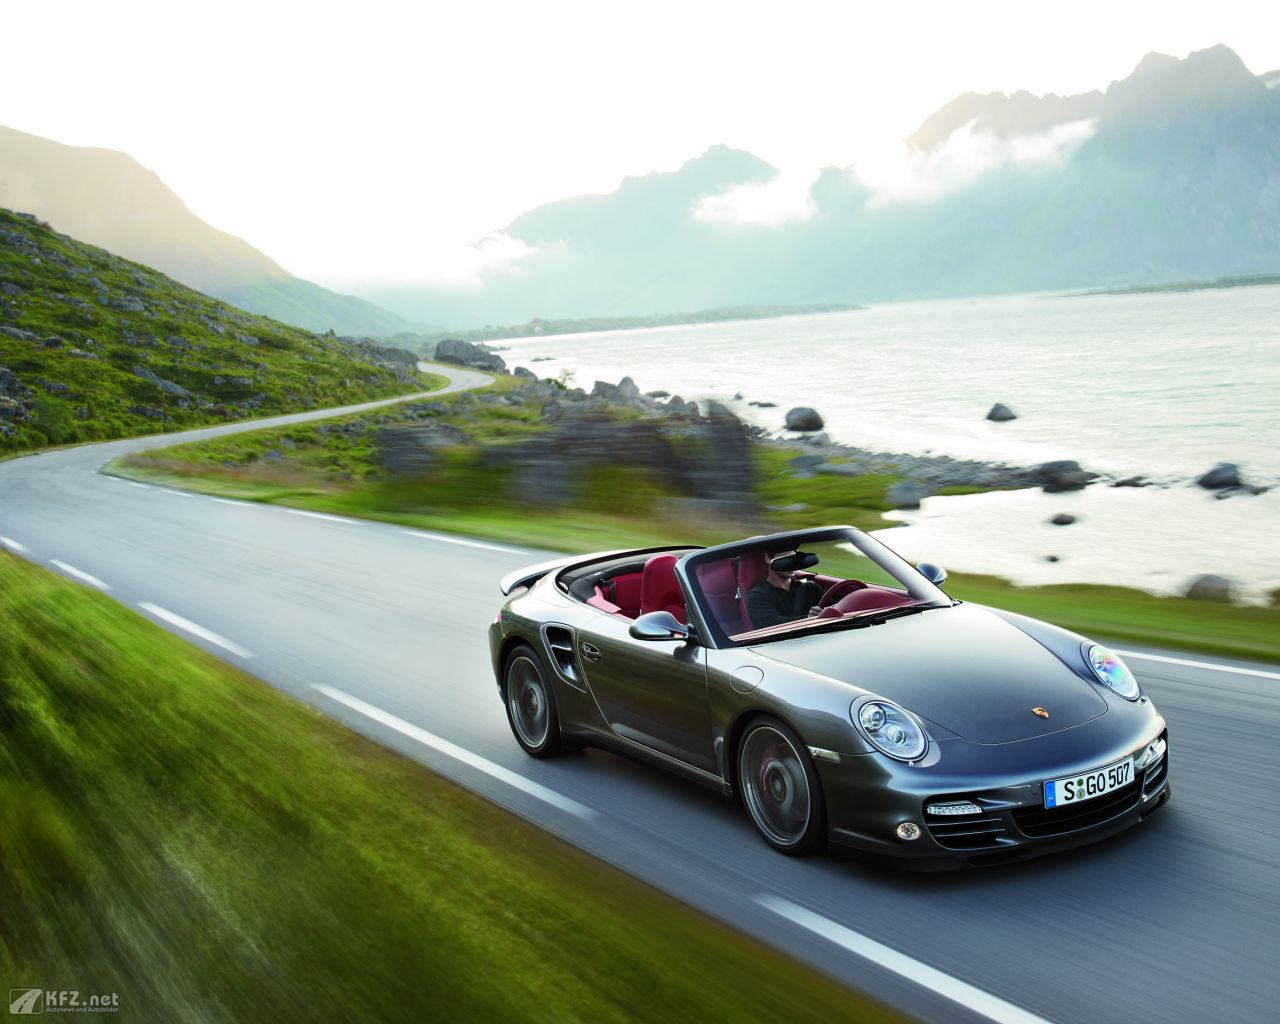 porsche-911-turbo-coupe-1280x1024-14